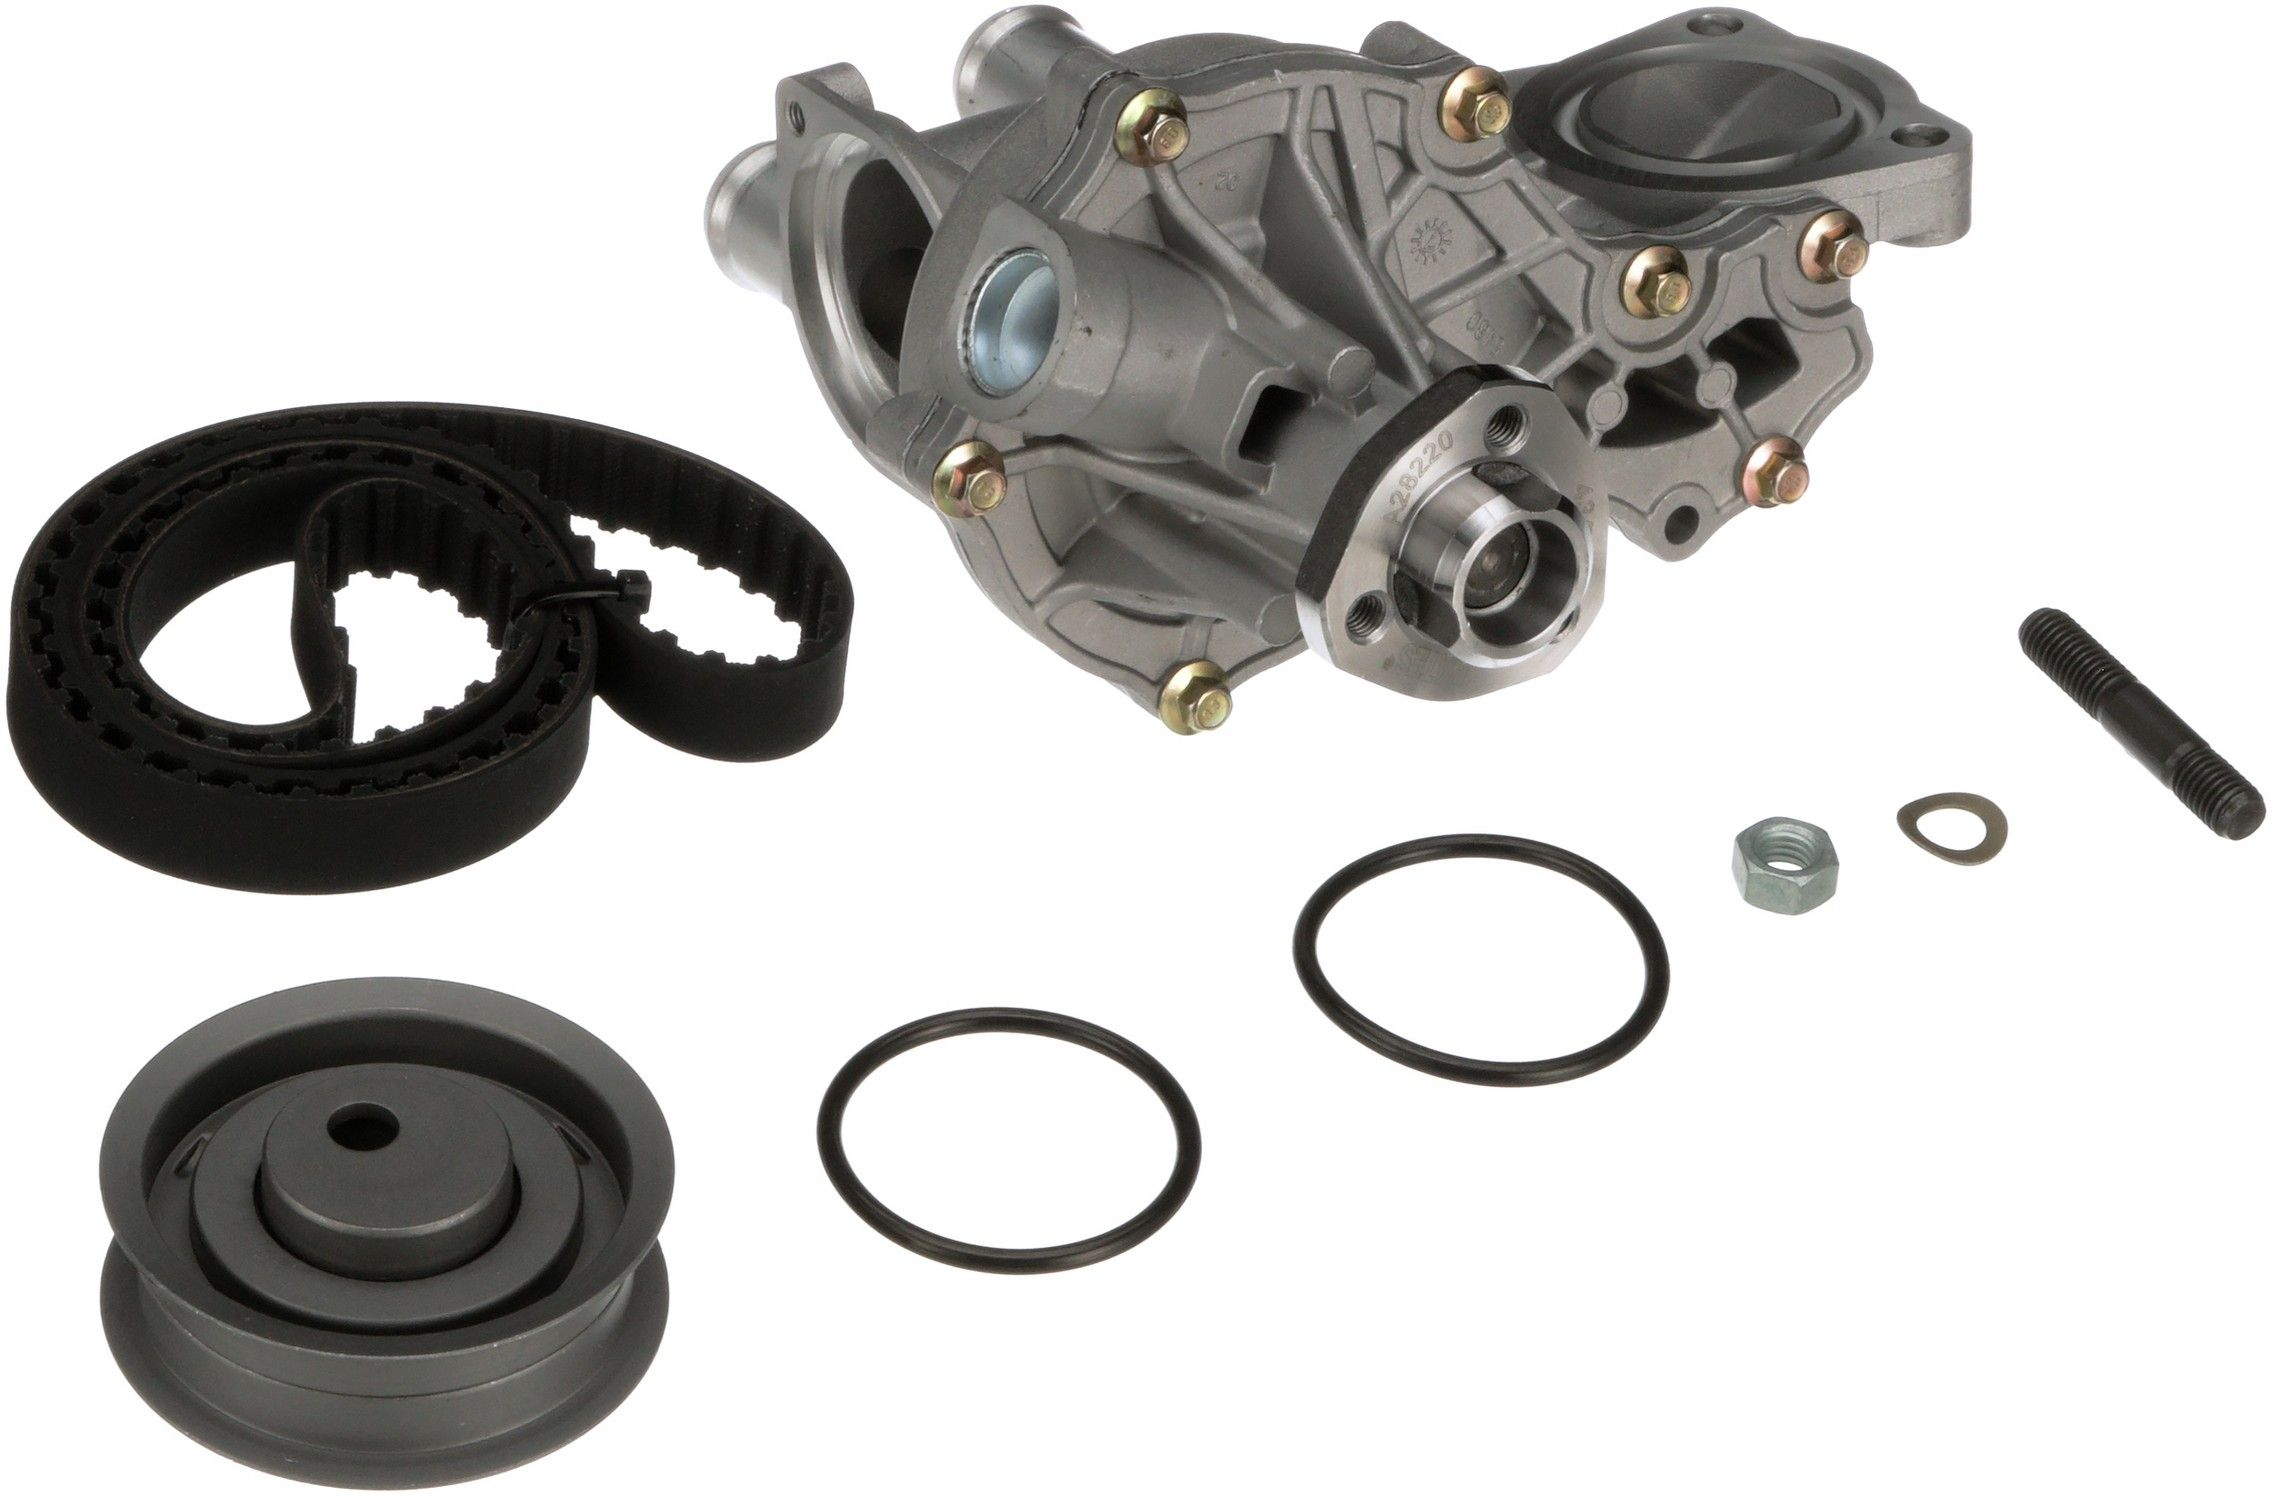 Volkswagen Jetta Engine Timing Belt Kit With Water Pump Replacement Dayco Idler 1996 4 Cyl 20l Gates Tckwp262 Interference Application